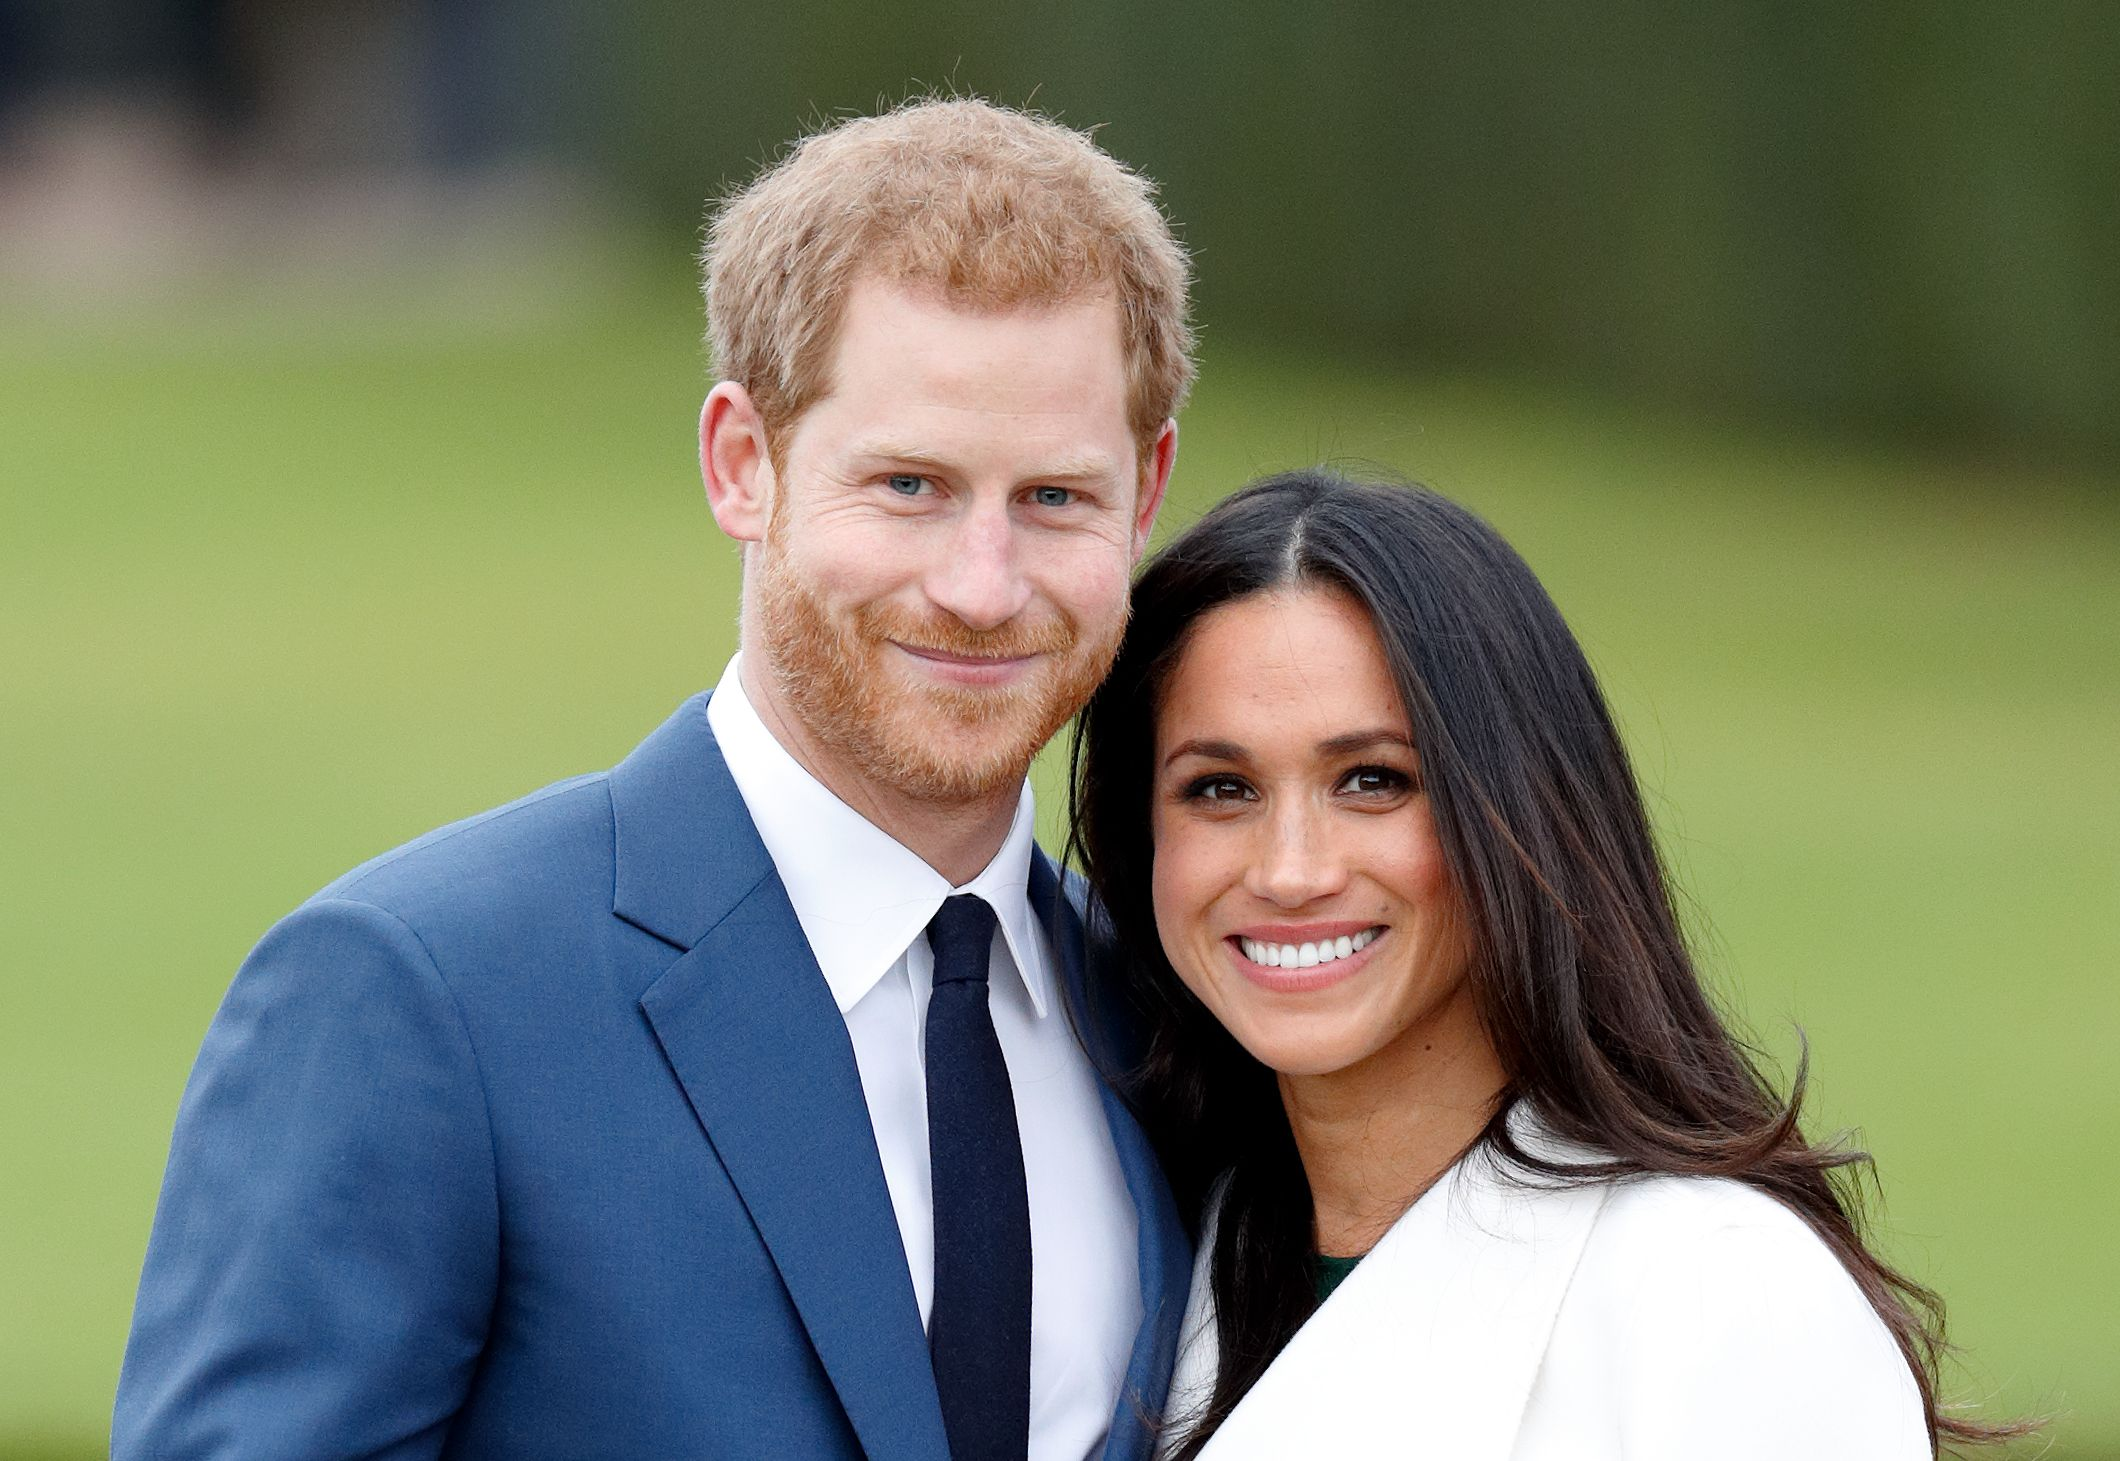 """The Queen Just Announced That She Has Come to an """"Agreement"""" With Prince Harry and Meghan Markle"""